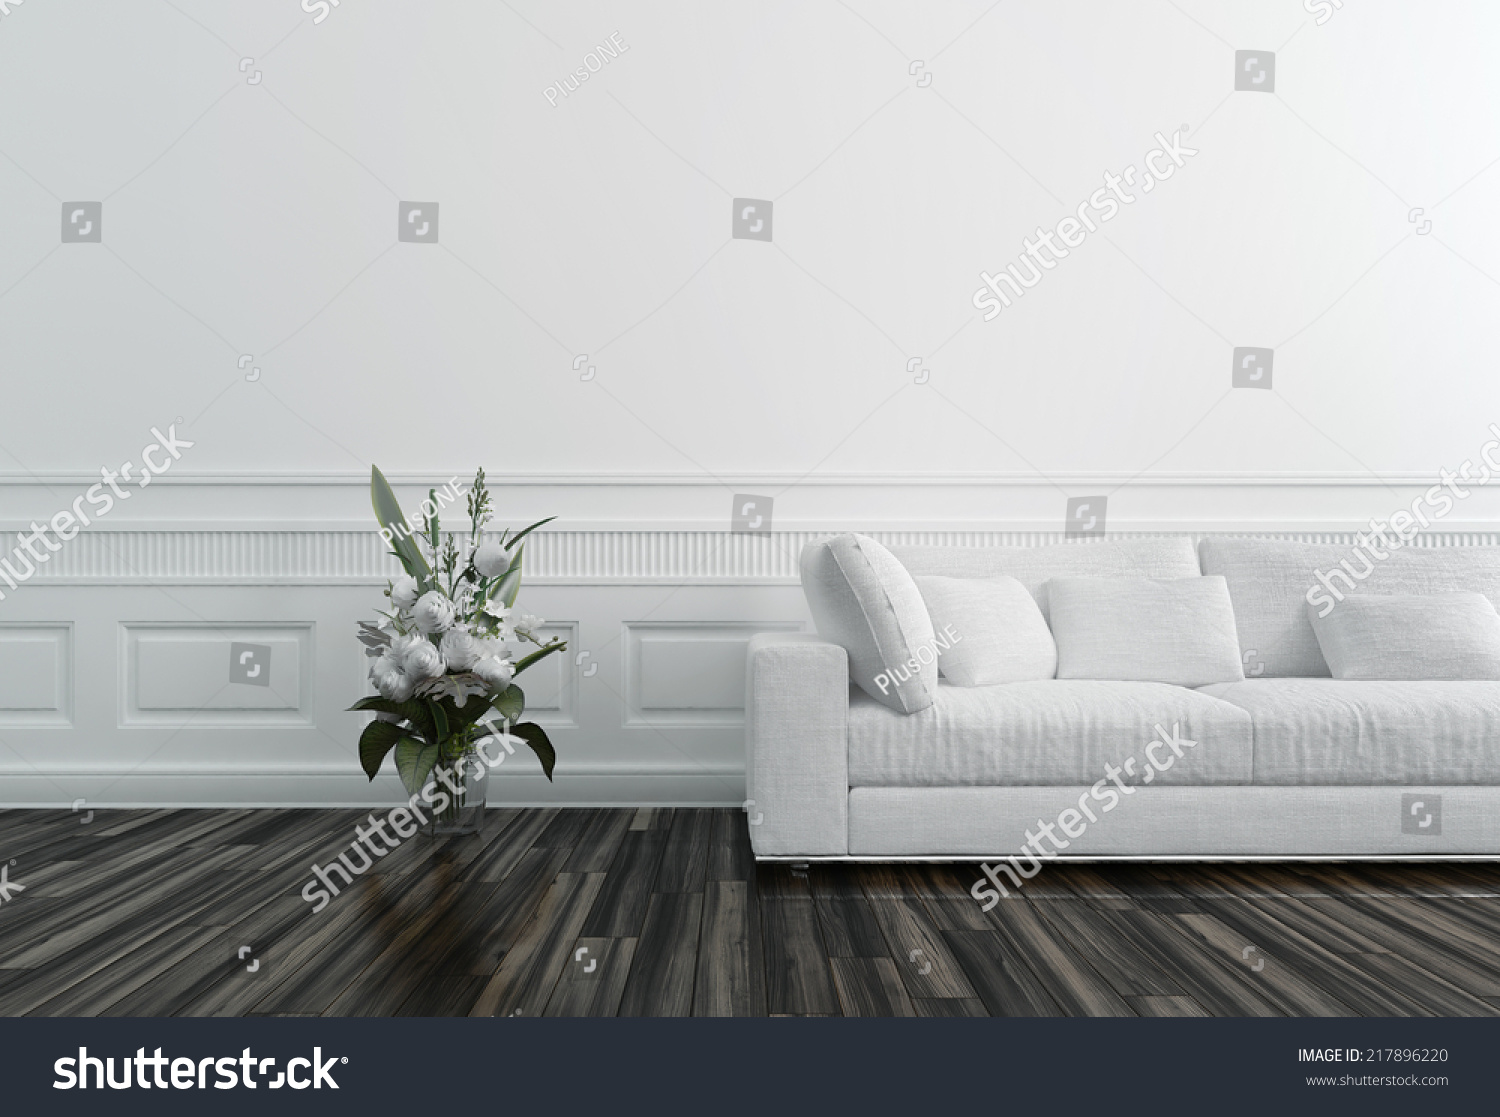 Flowers in vase next day delivery - Flowers In Vase Next To White Sofa In Luxury Upscale Home